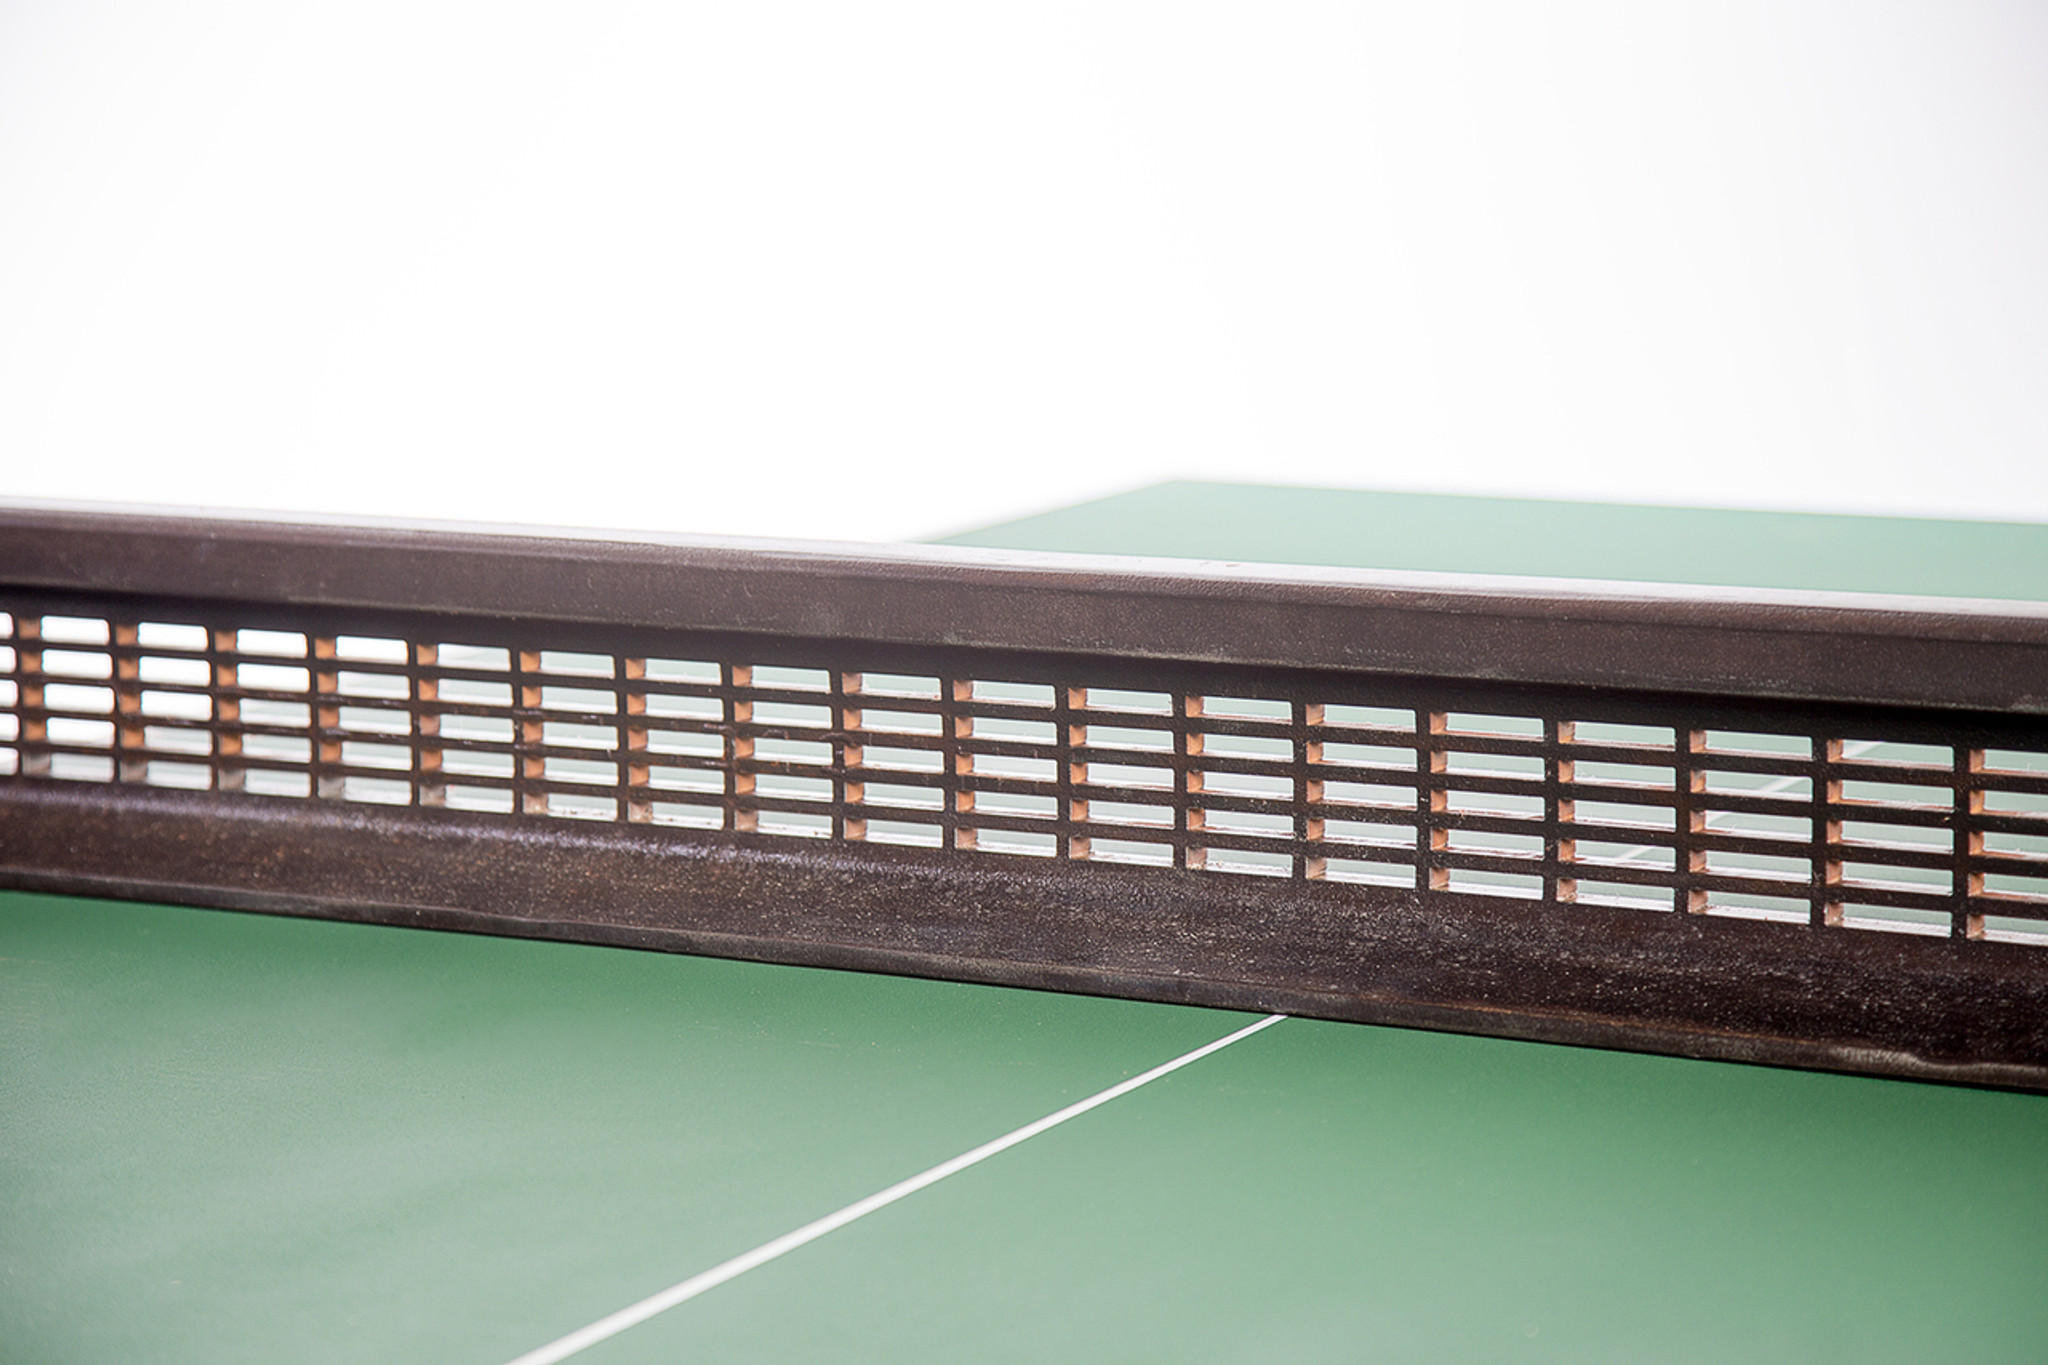 Metal ping pong net on durable high-end table tennis table custom crafted from reclaimed industrial materials